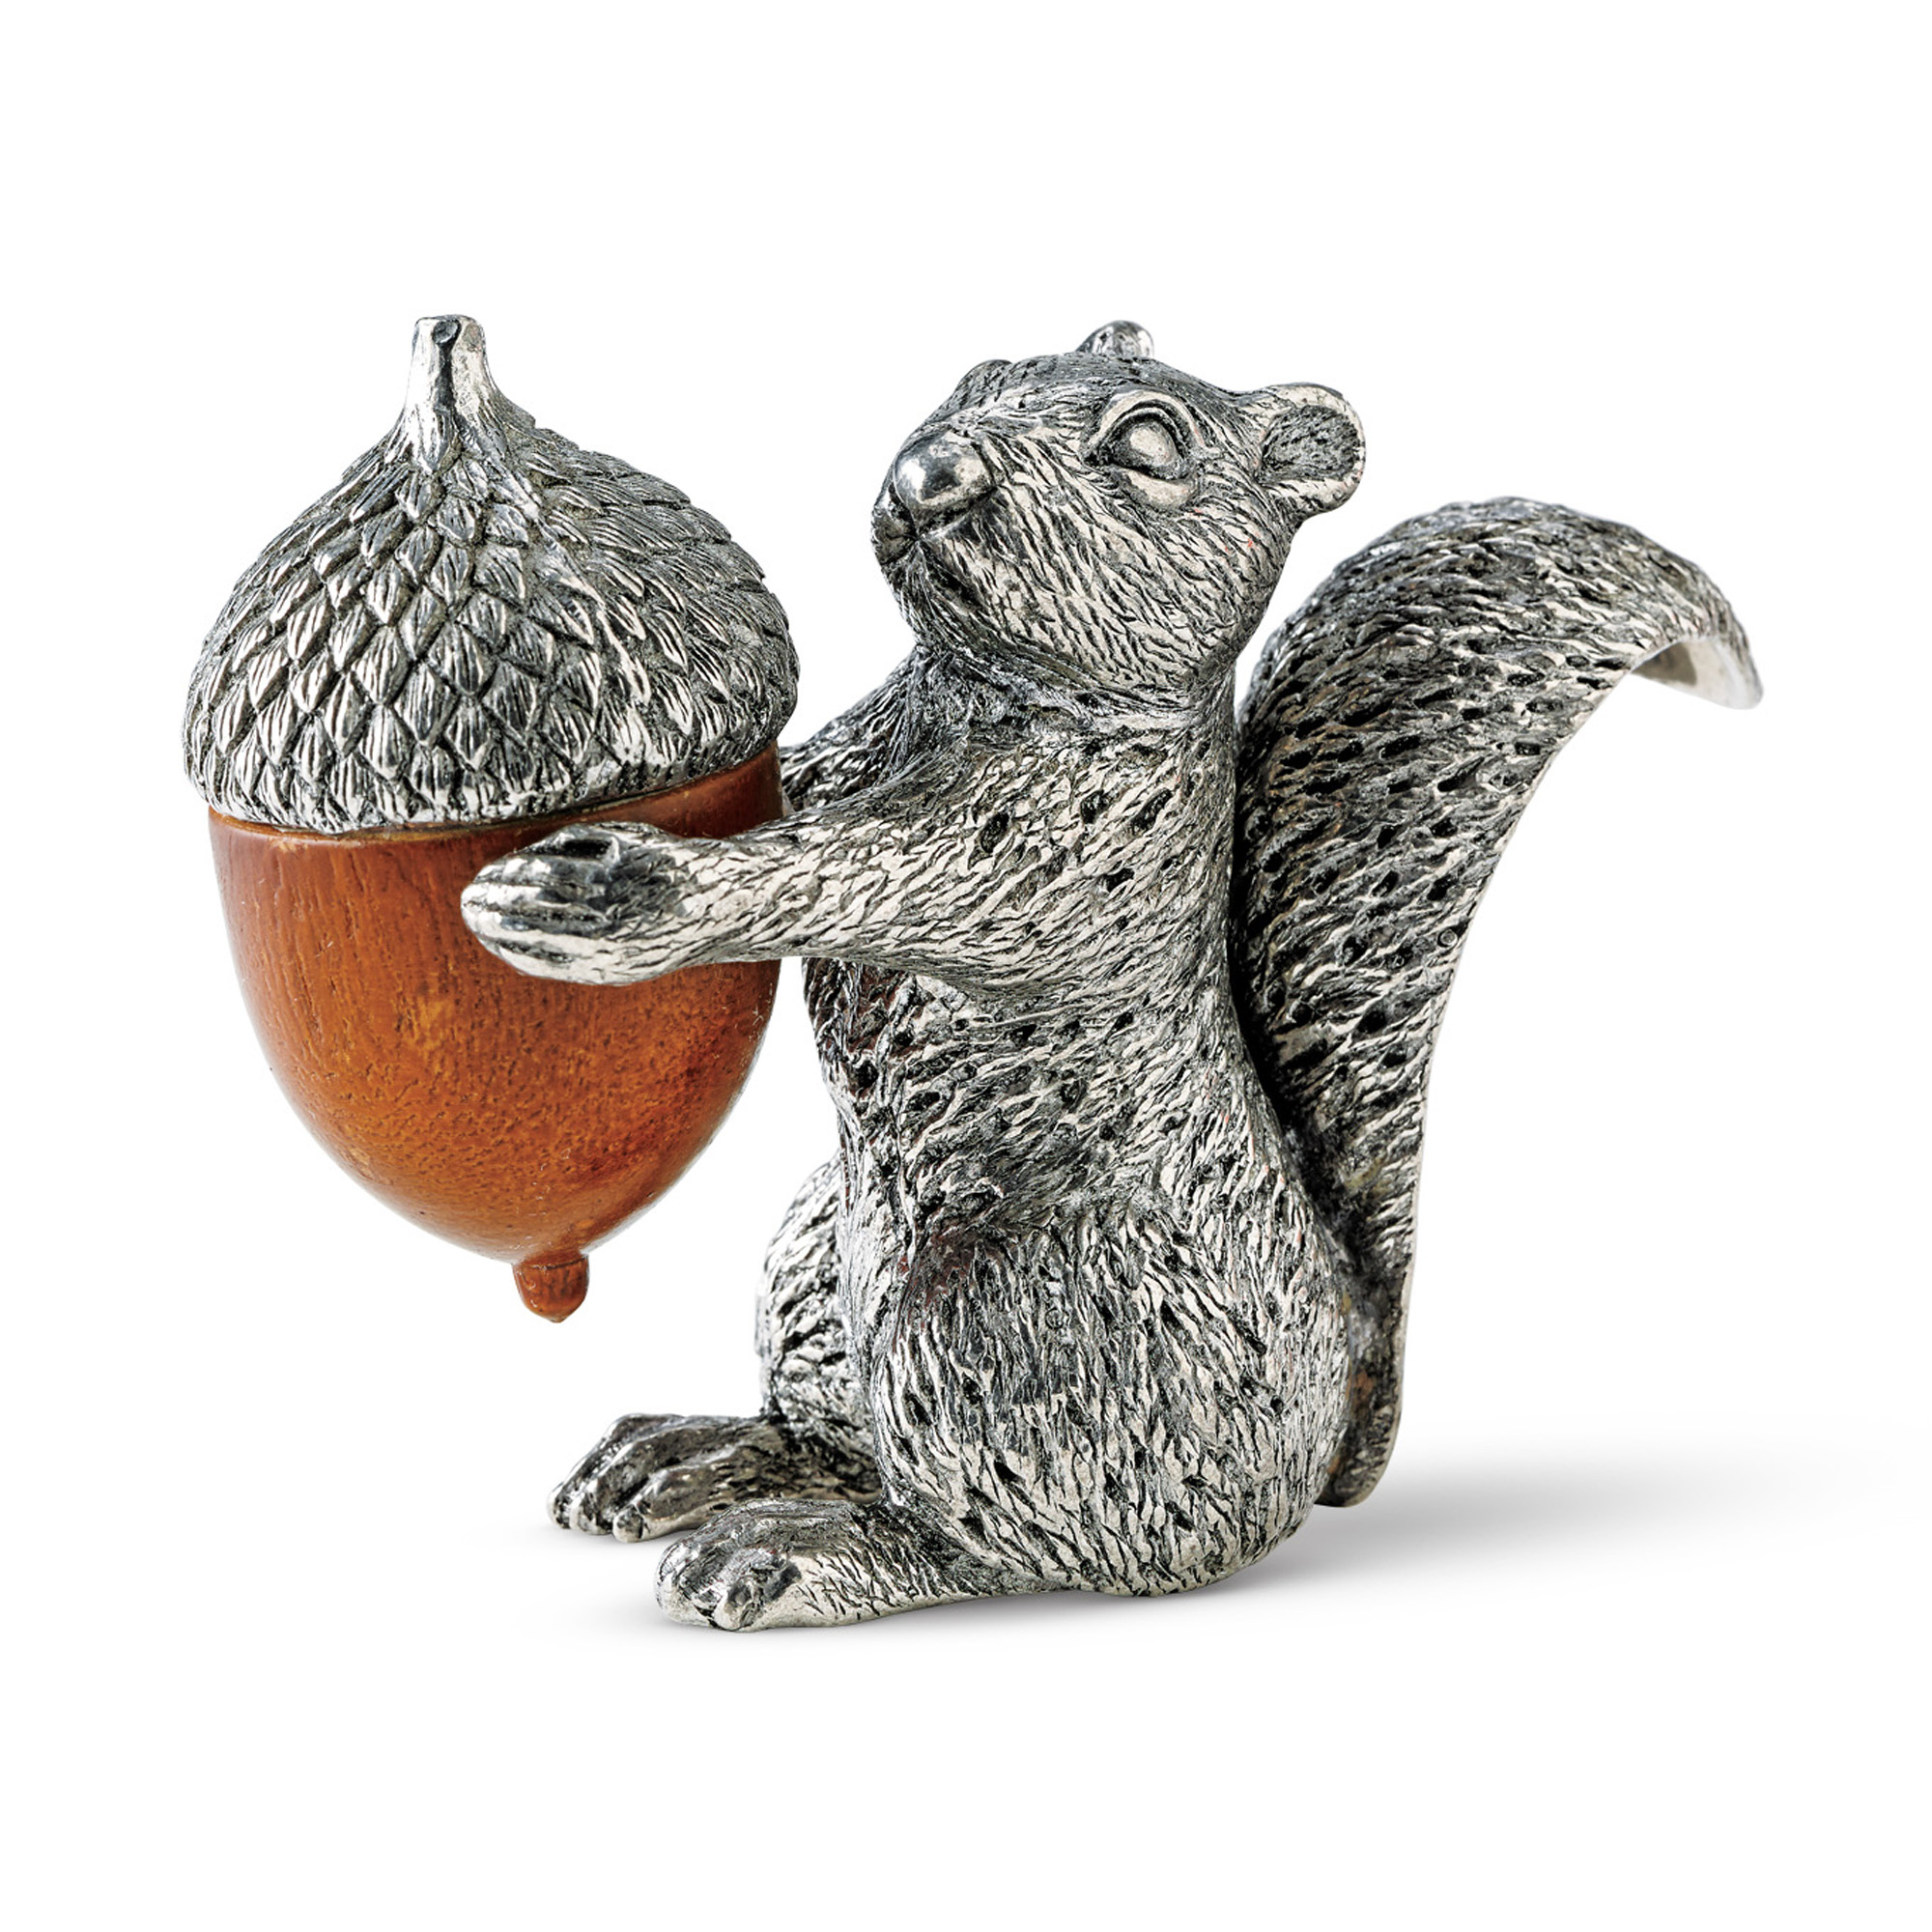 Squirrel Salt & Pepper Shakers